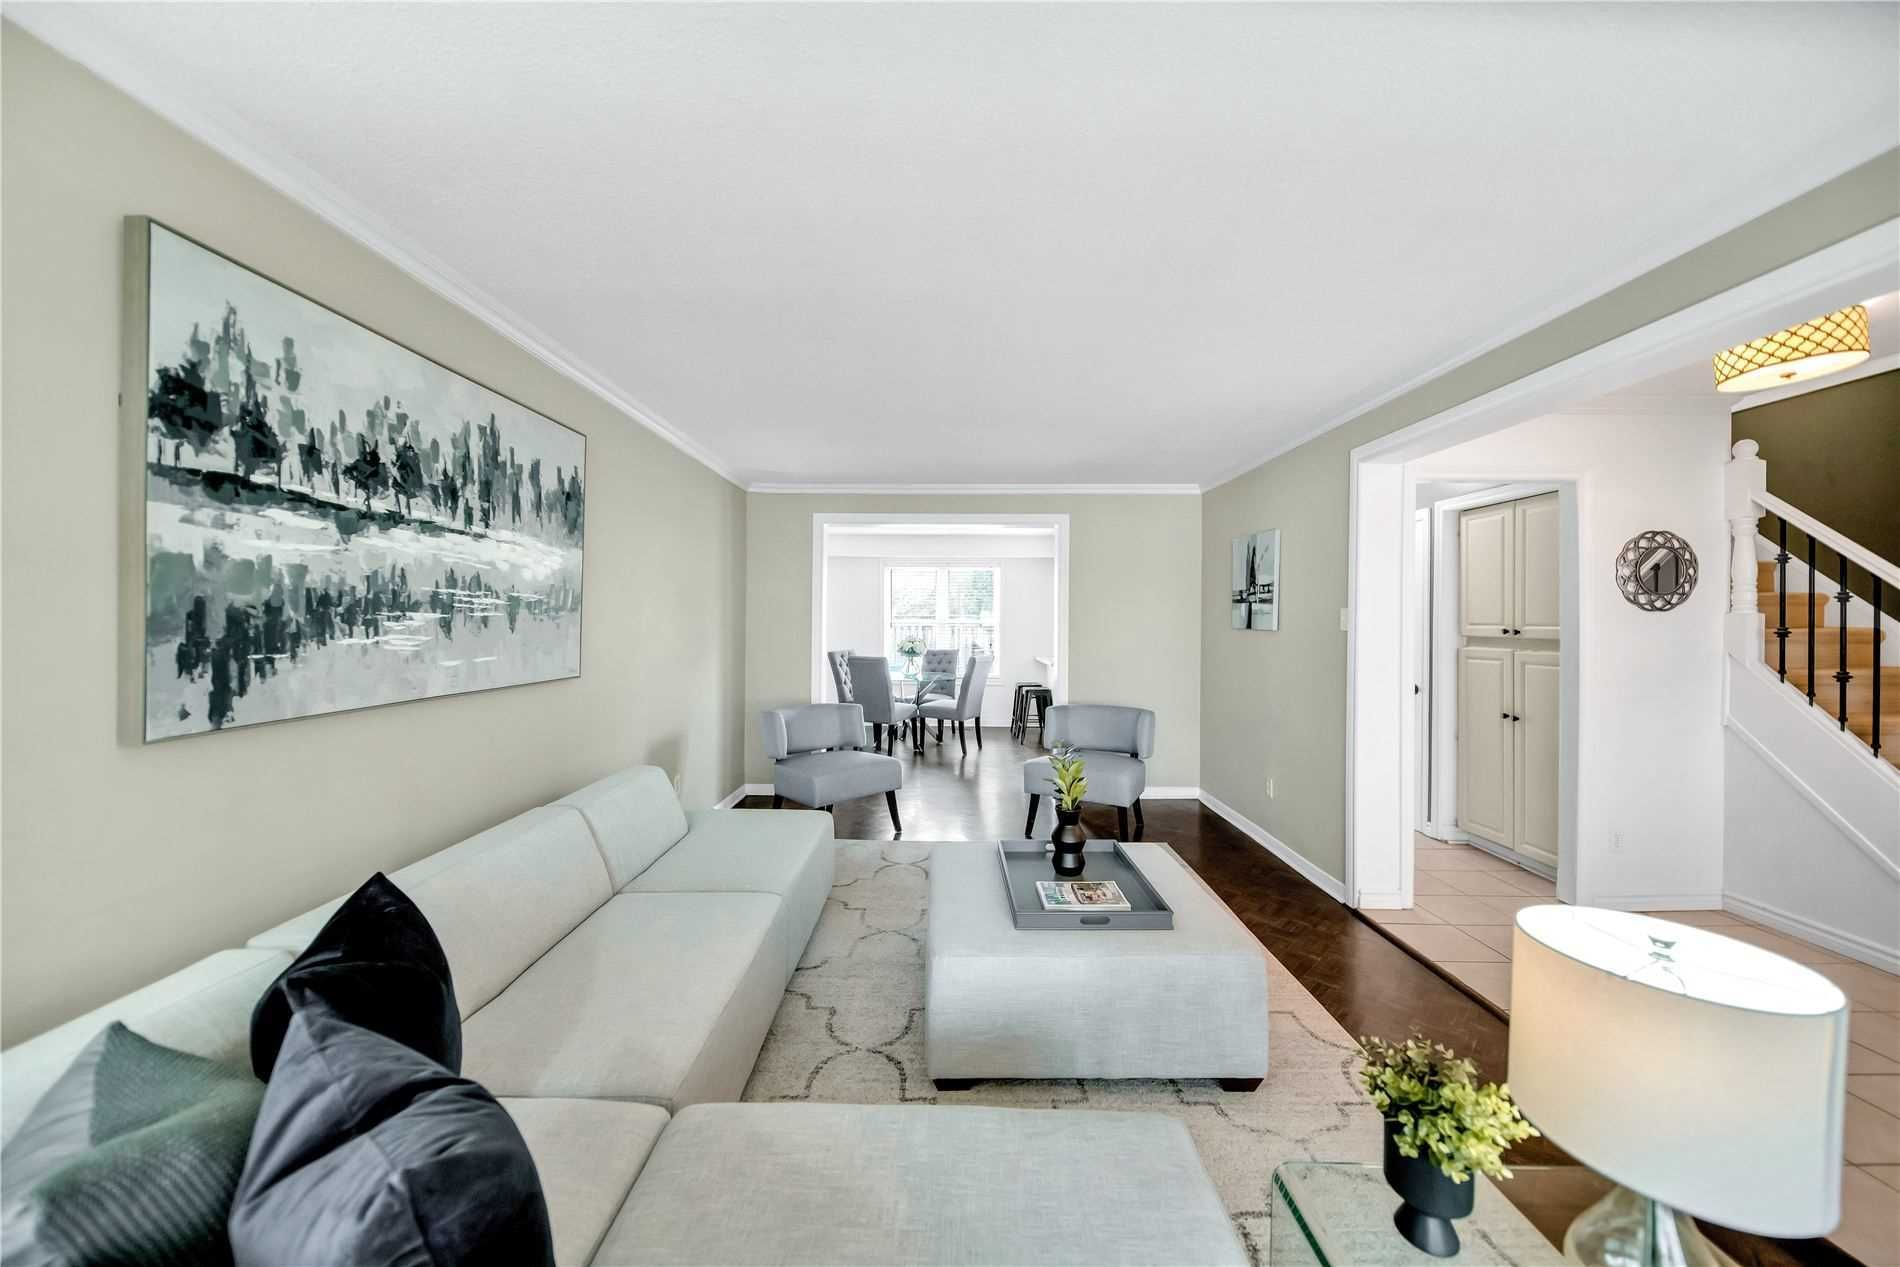 Main Photo: 38 Michael Boulevard in Whitby: Lynde Creek House (2-Storey) for sale : MLS®# E5226833